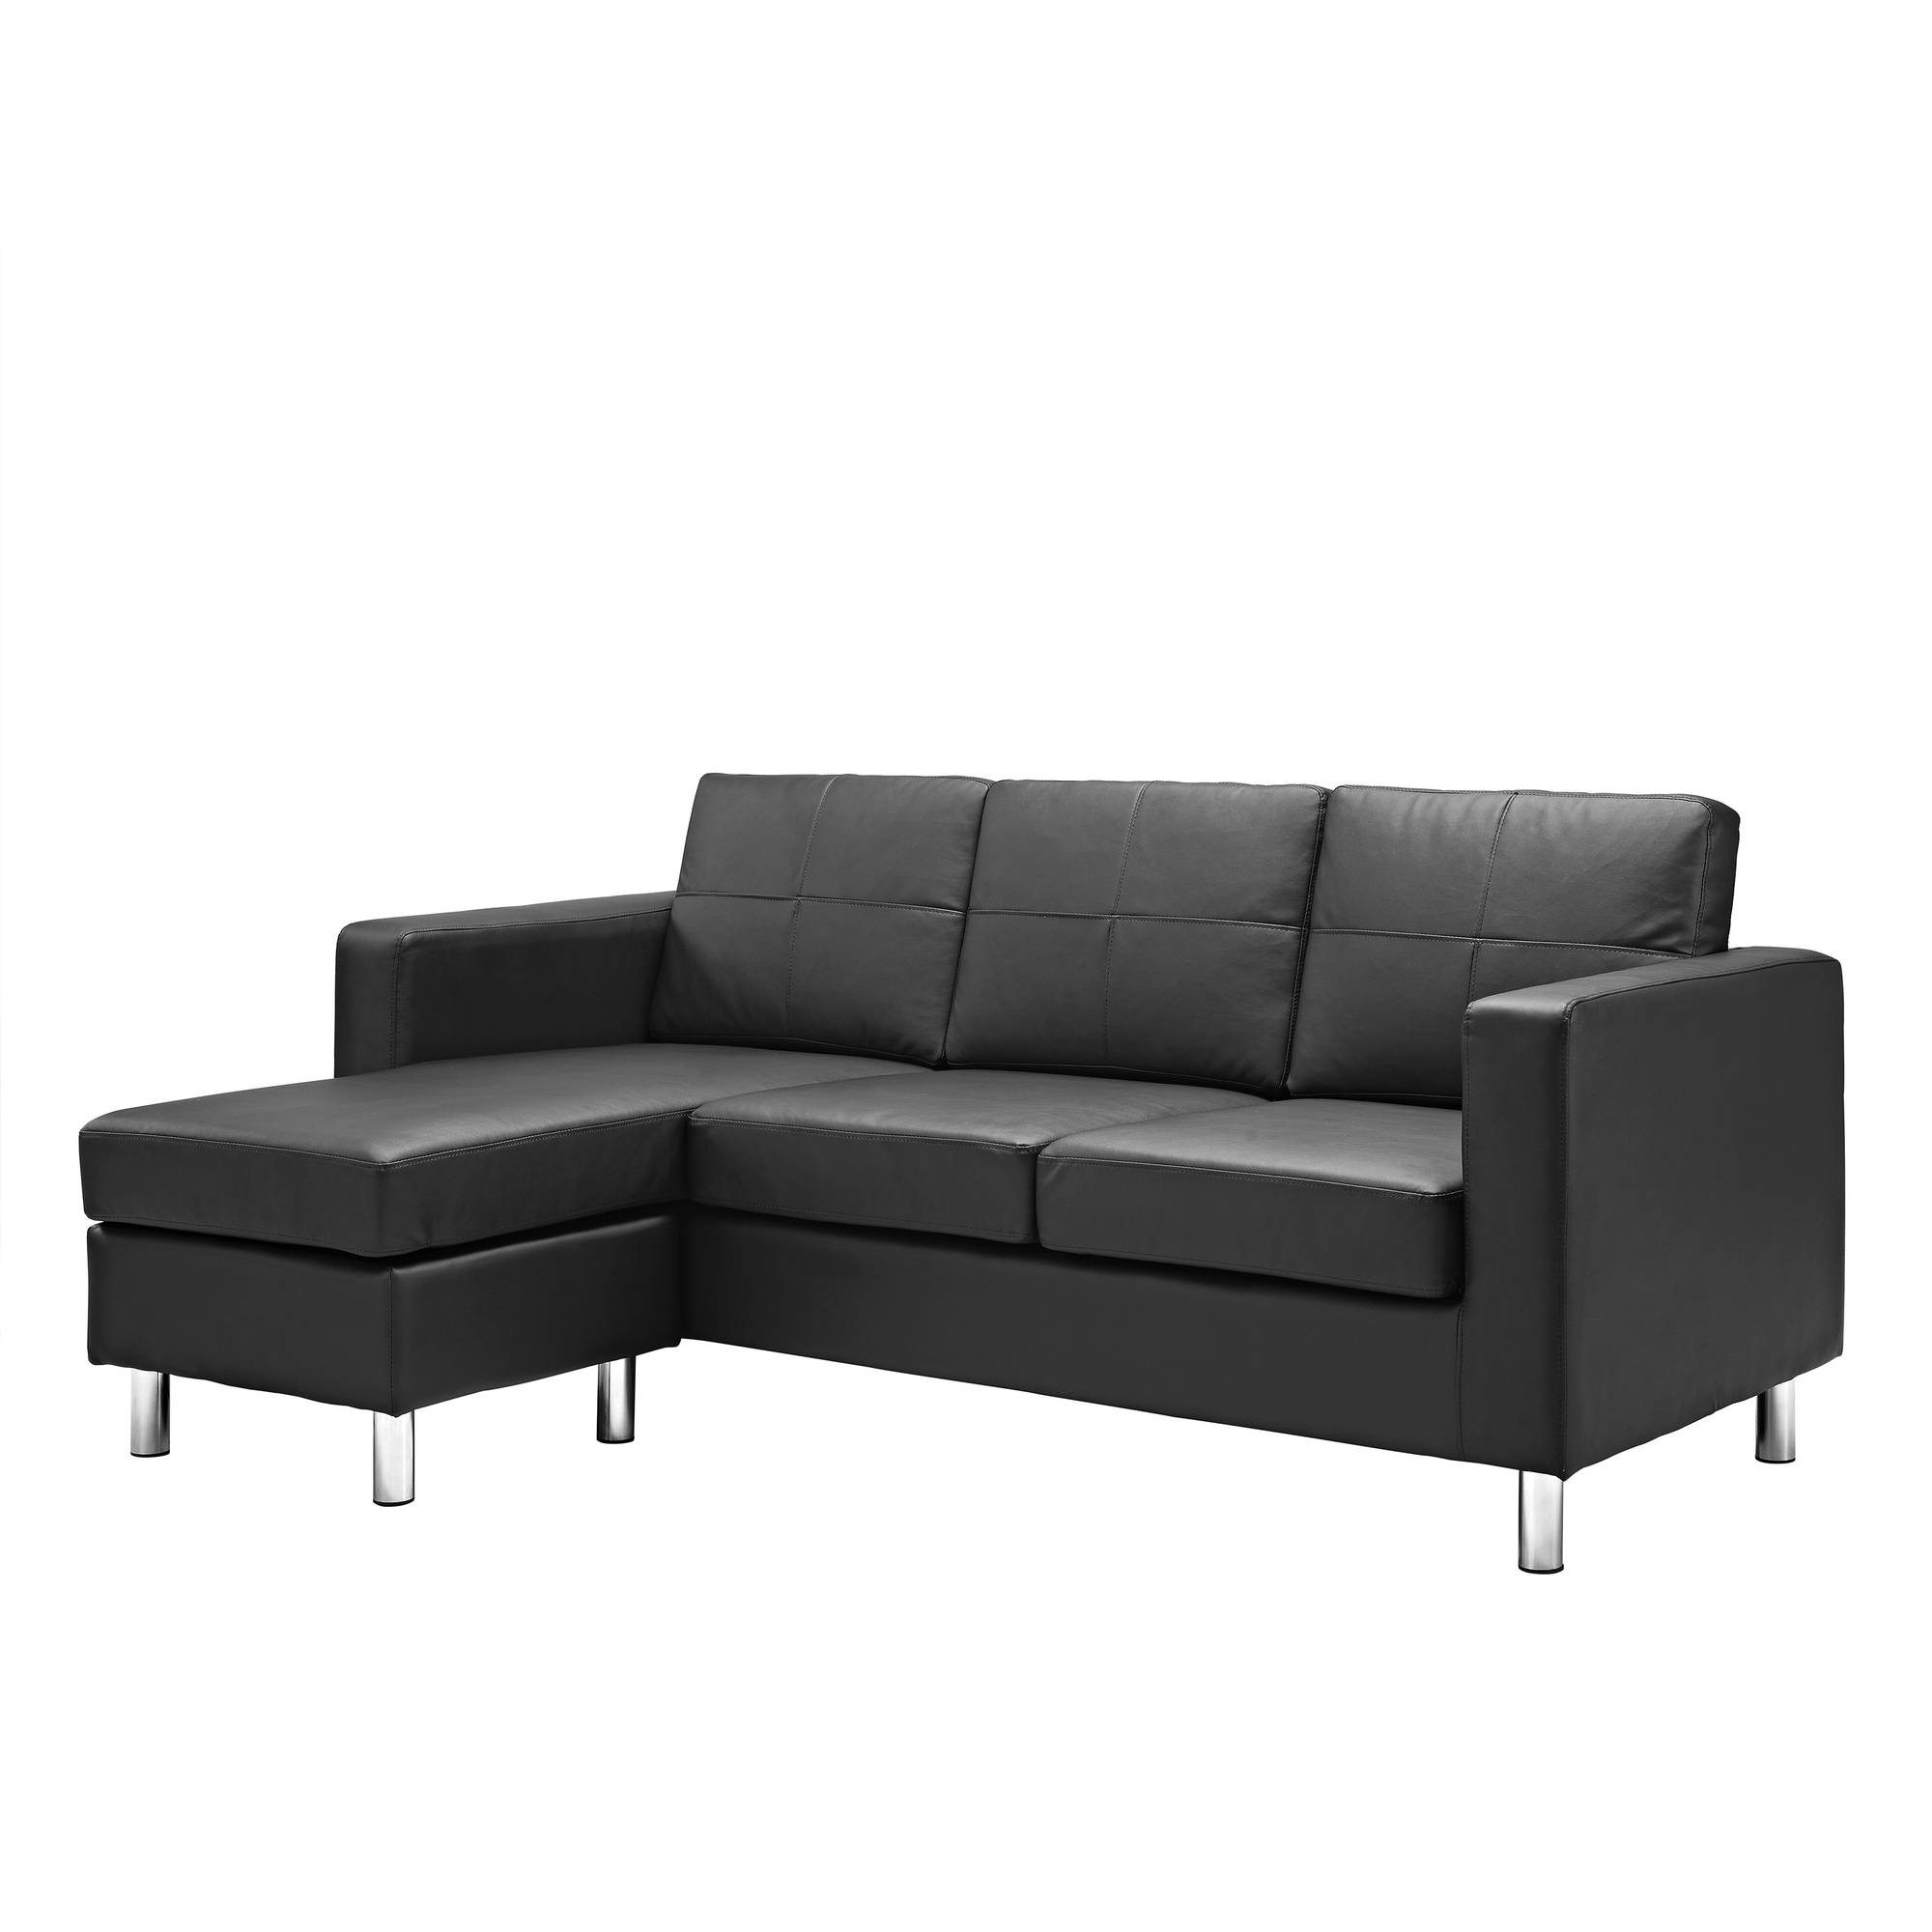 Dorel Living Small Spaces Configurable Sectional Sofa Multiple Throughout Compact Sectional Sofas (#5 of 12)